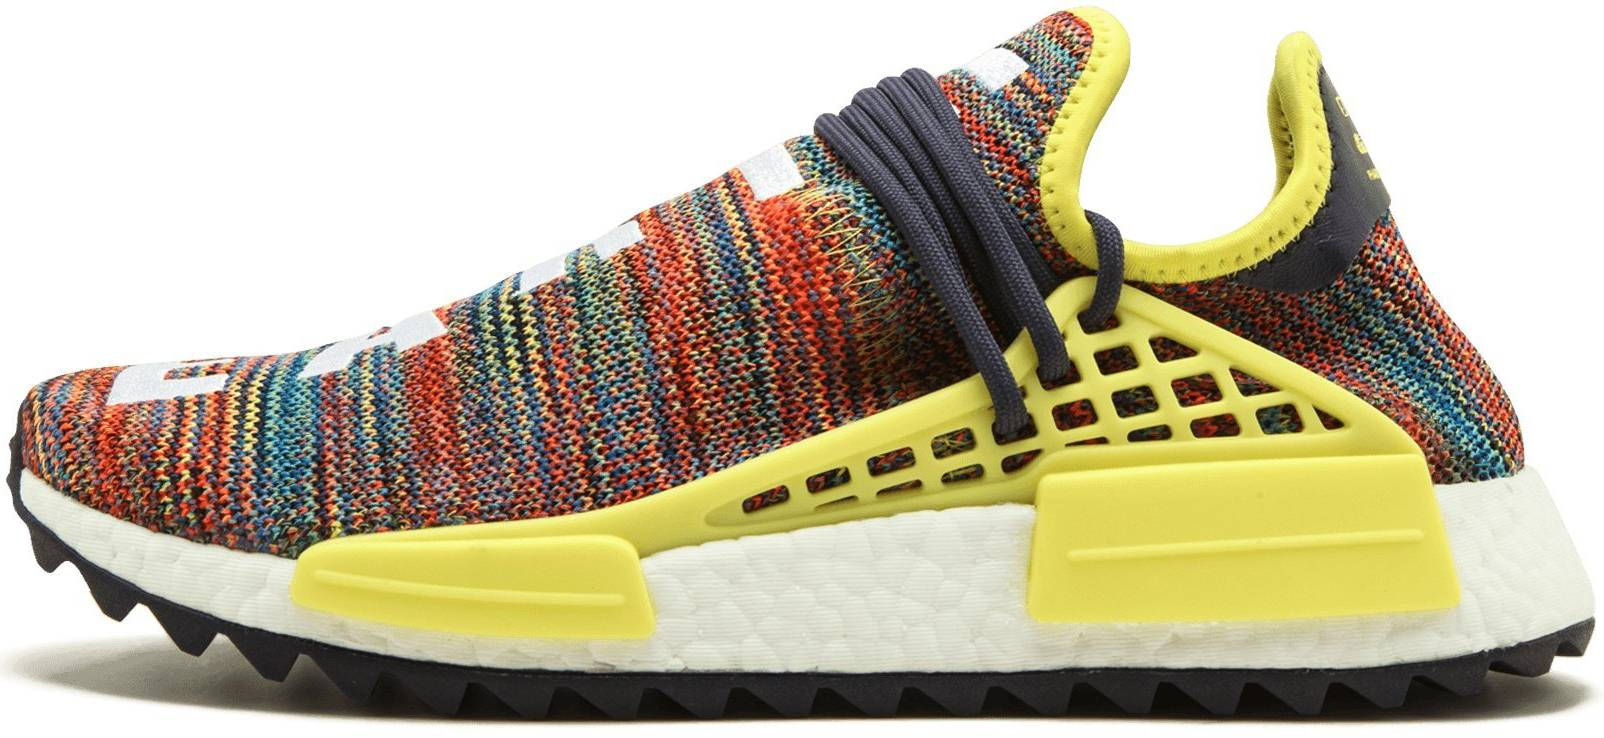 Save 43% on Pharrell Williams Sneakers